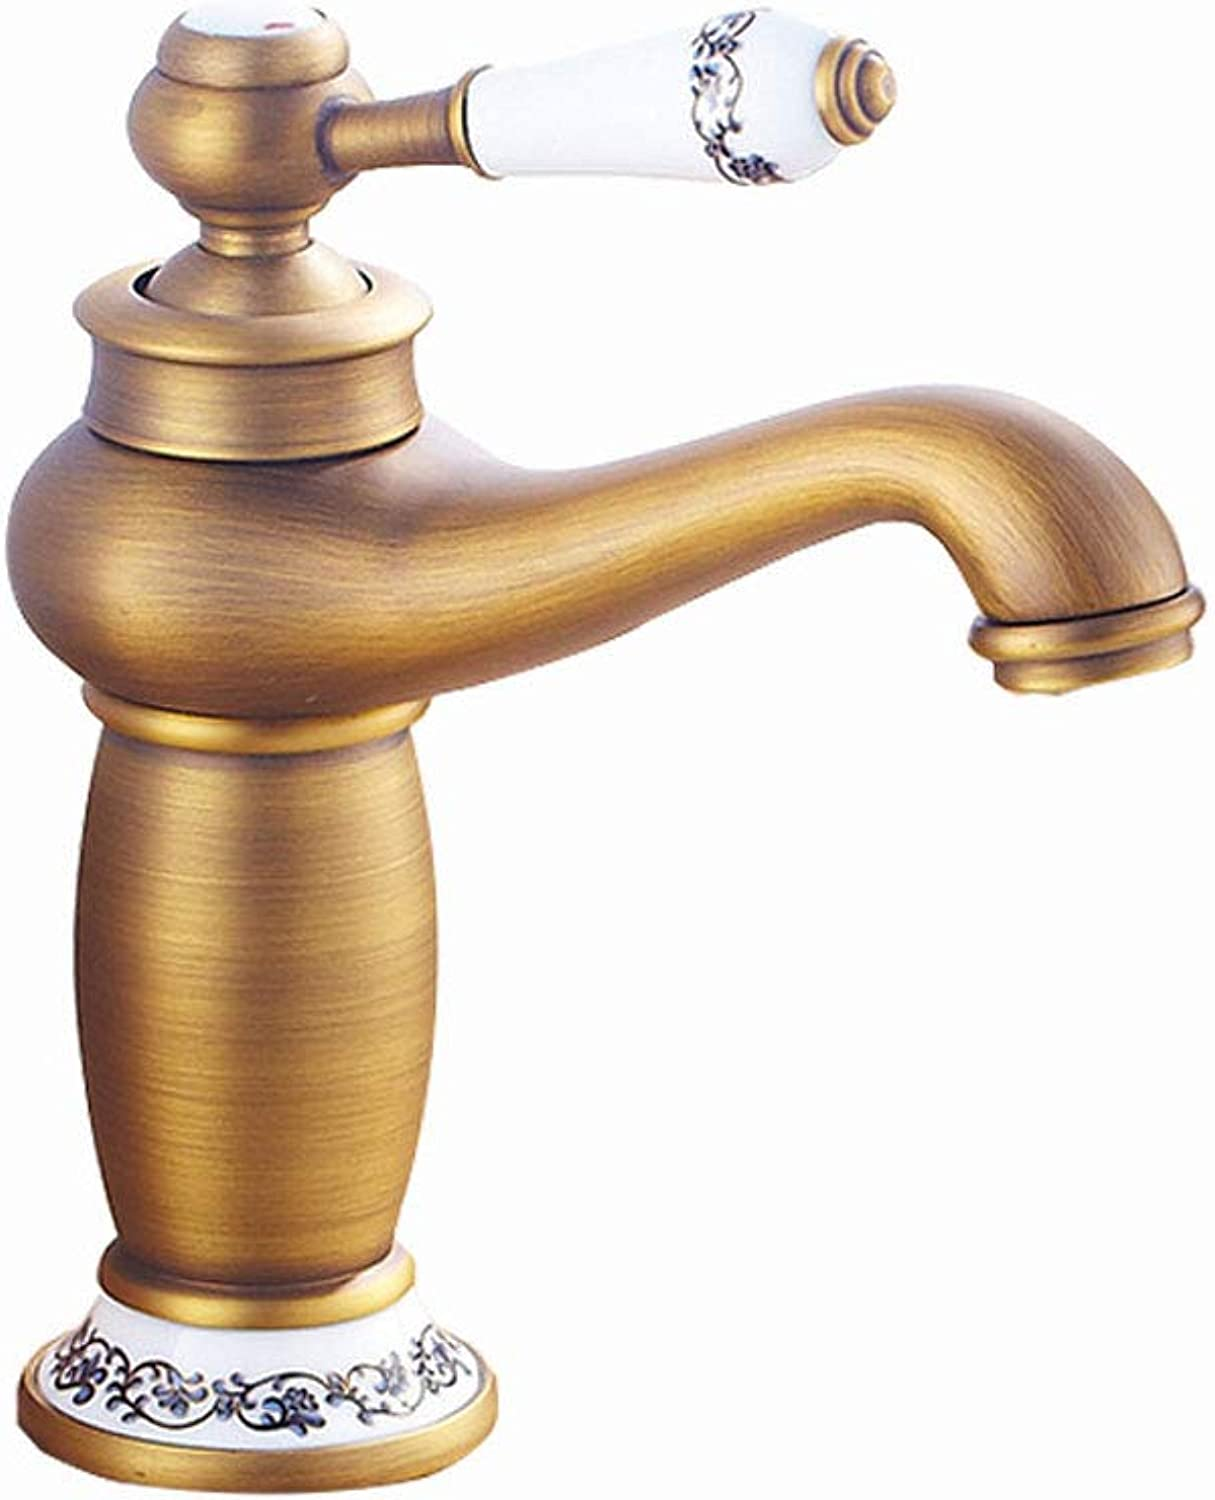 LYCY Faucet European Full Copper Antique Hot And Cold Double Open Basin Mixed bluee And White Porcelain (color   A)